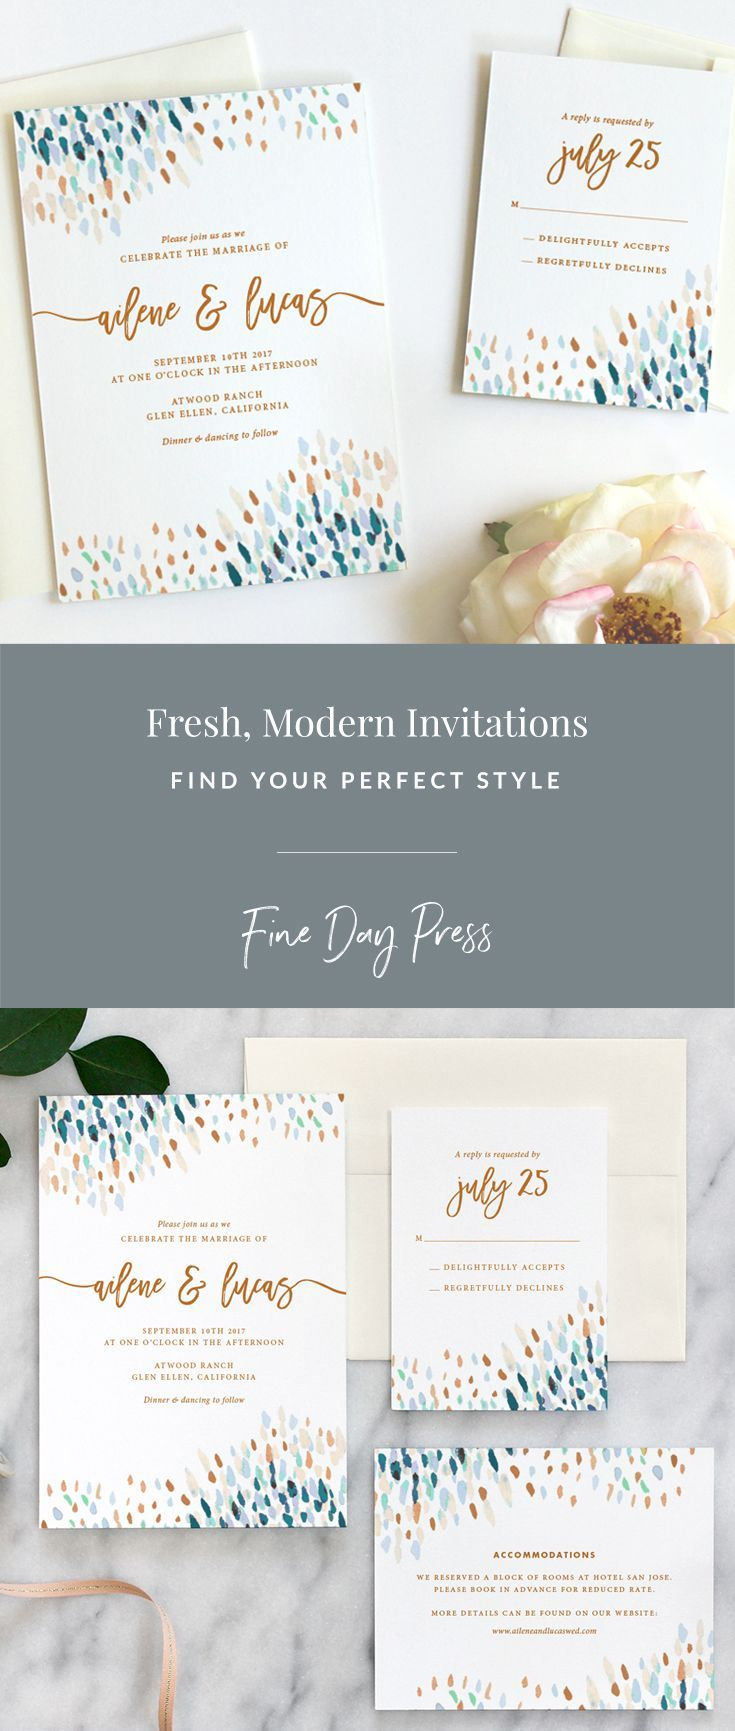 sample wedding invitation letter for uk visa%0A Fresh  modern wedding invitations on luxe cotton stock by Fine Day Press   weddinginvitation